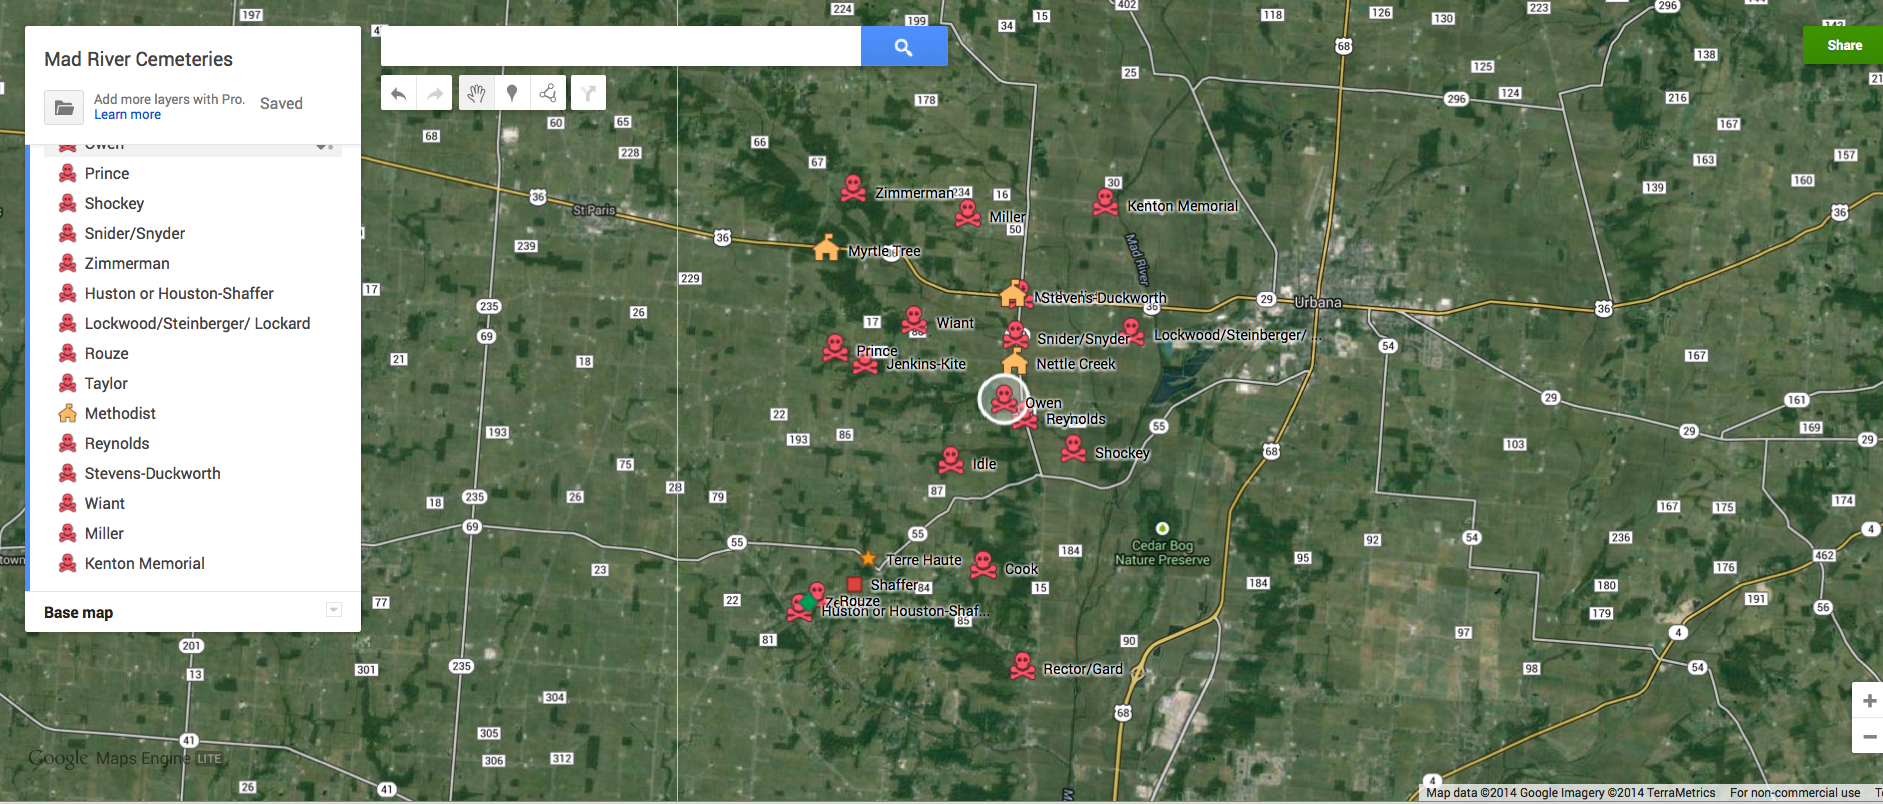 Mad River Cemeteries Google Maps final draft